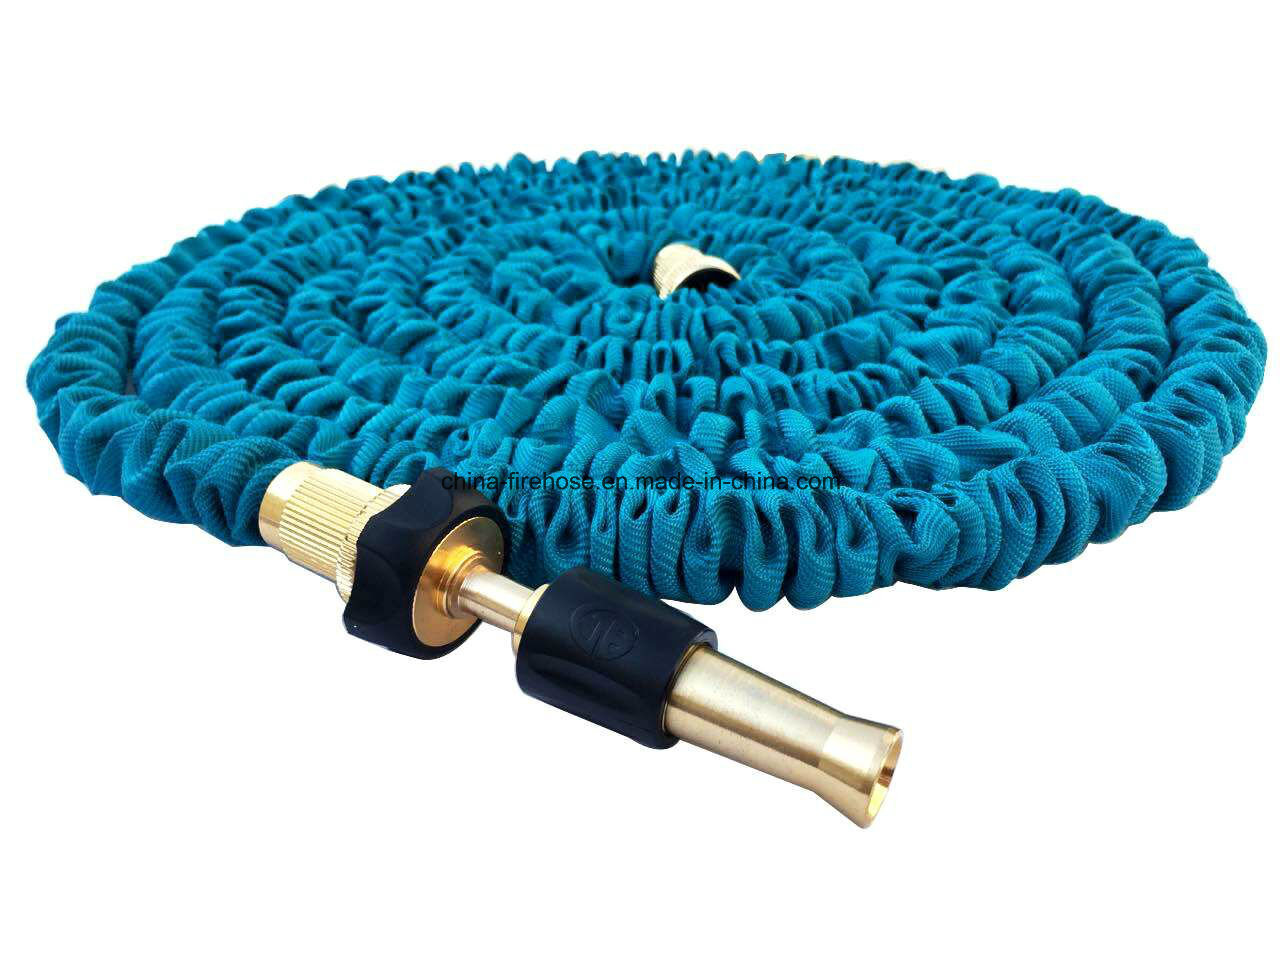 50FT 3 Times Retractable Natural Latex Pipe Manufacturers Wholesale Garden Hose